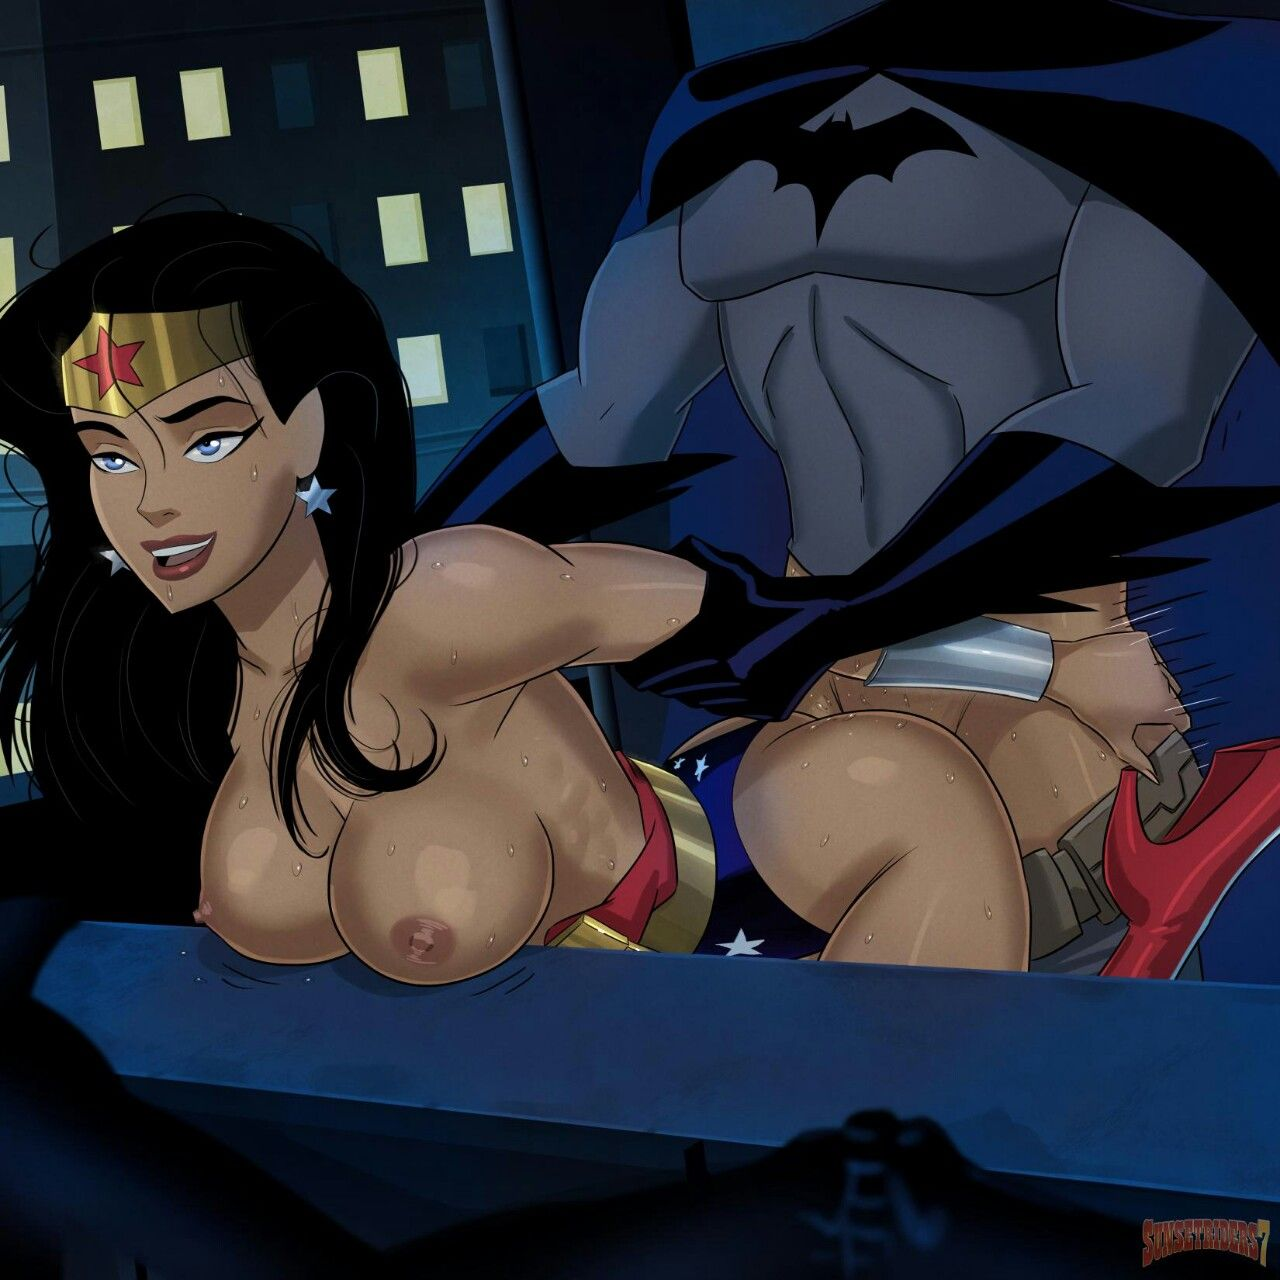 Wonder woman hentai from justice league